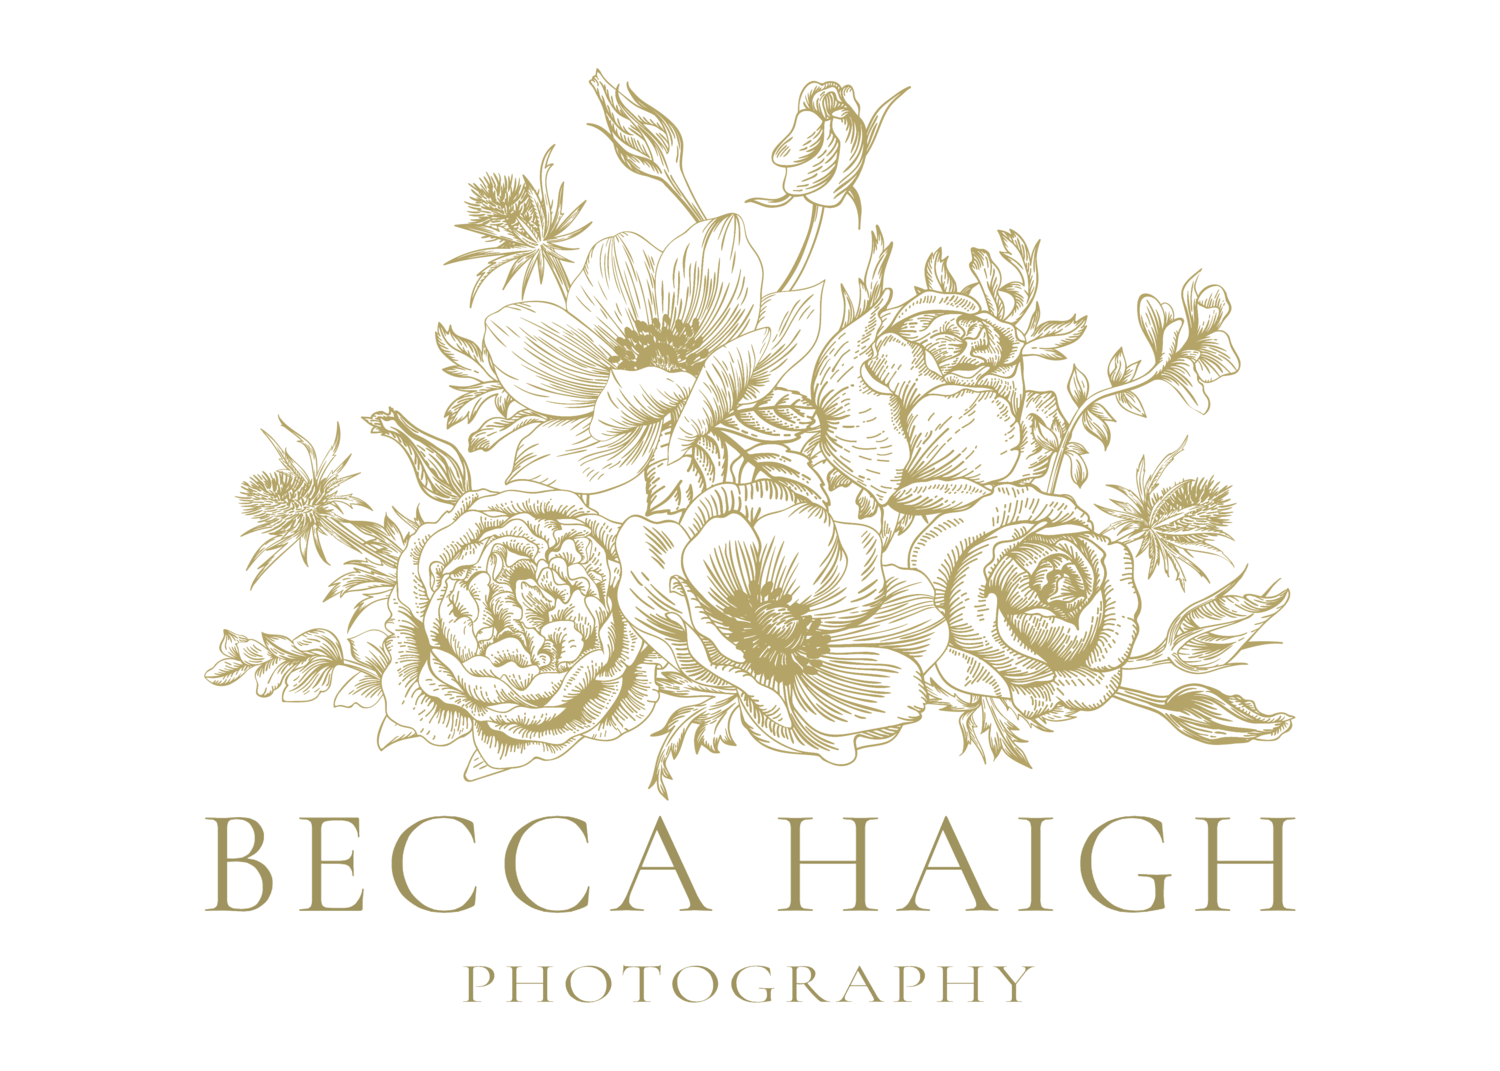 Becca Haigh Photography